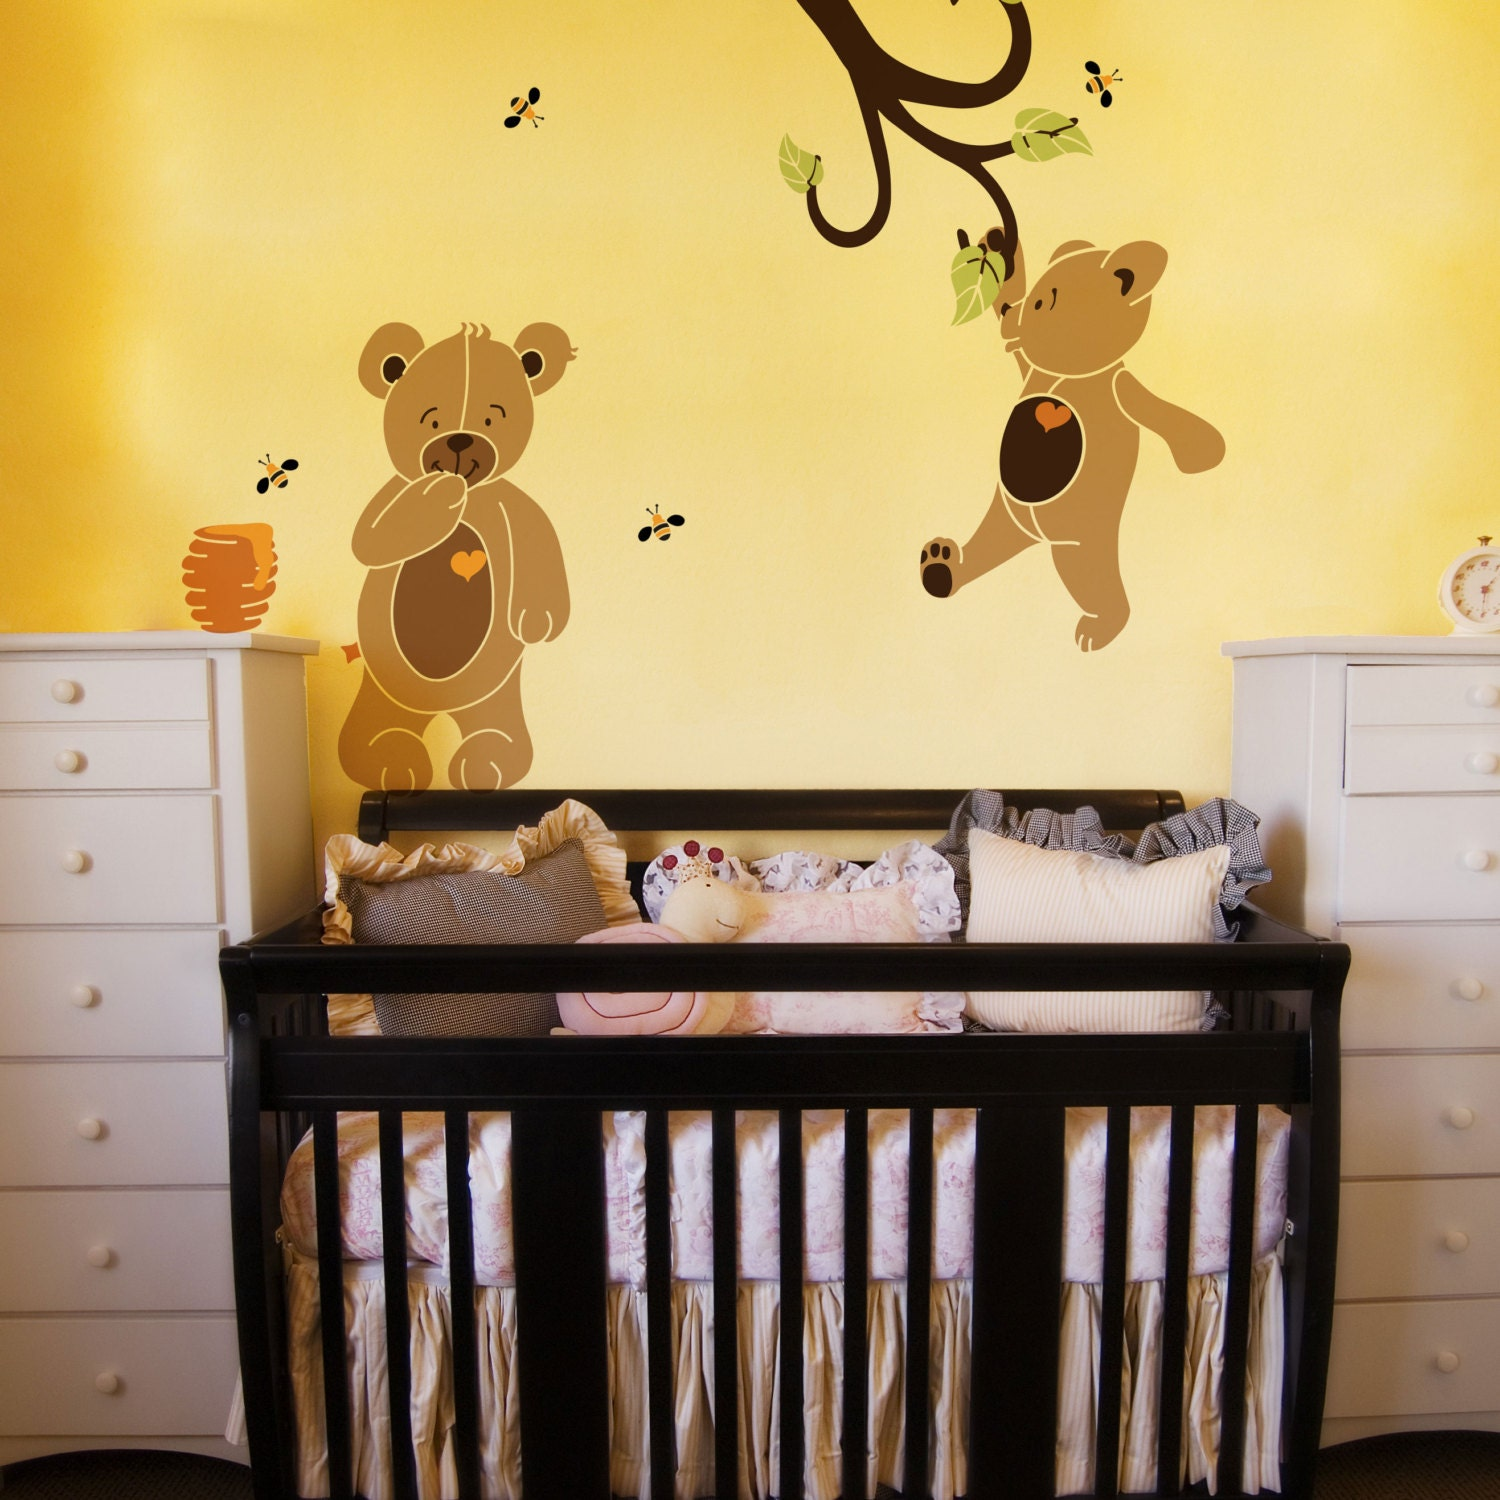 Teddy Bear Wall Stencils for Painting Bears in Baby Room Walls | Etsy